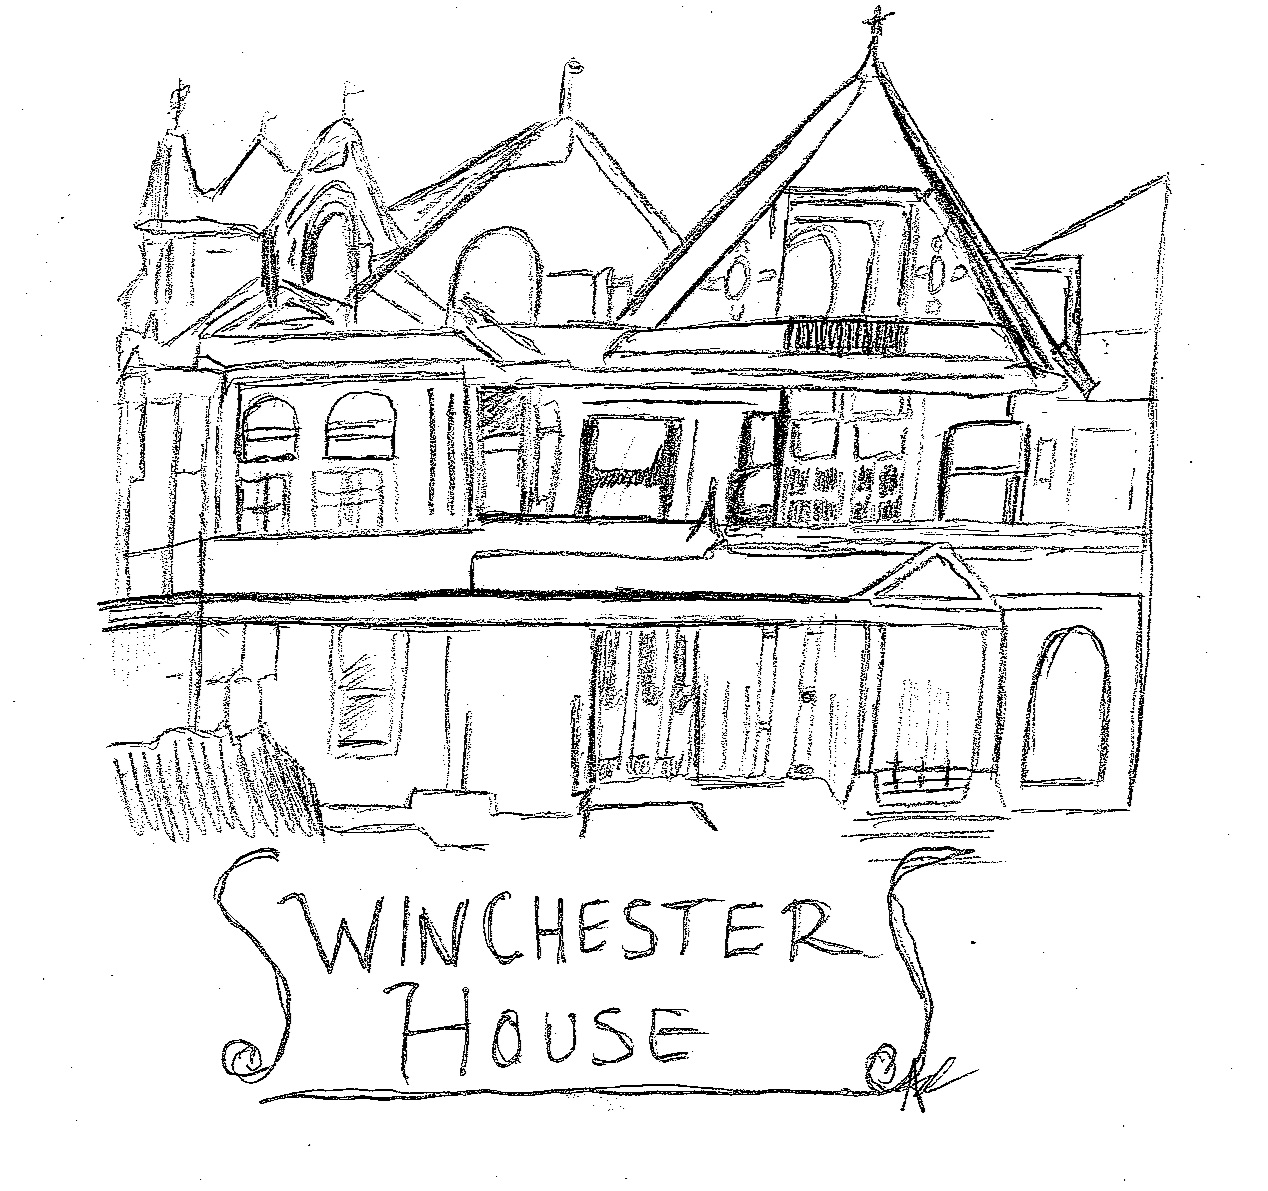 Illustration of Winchester House in San Jose